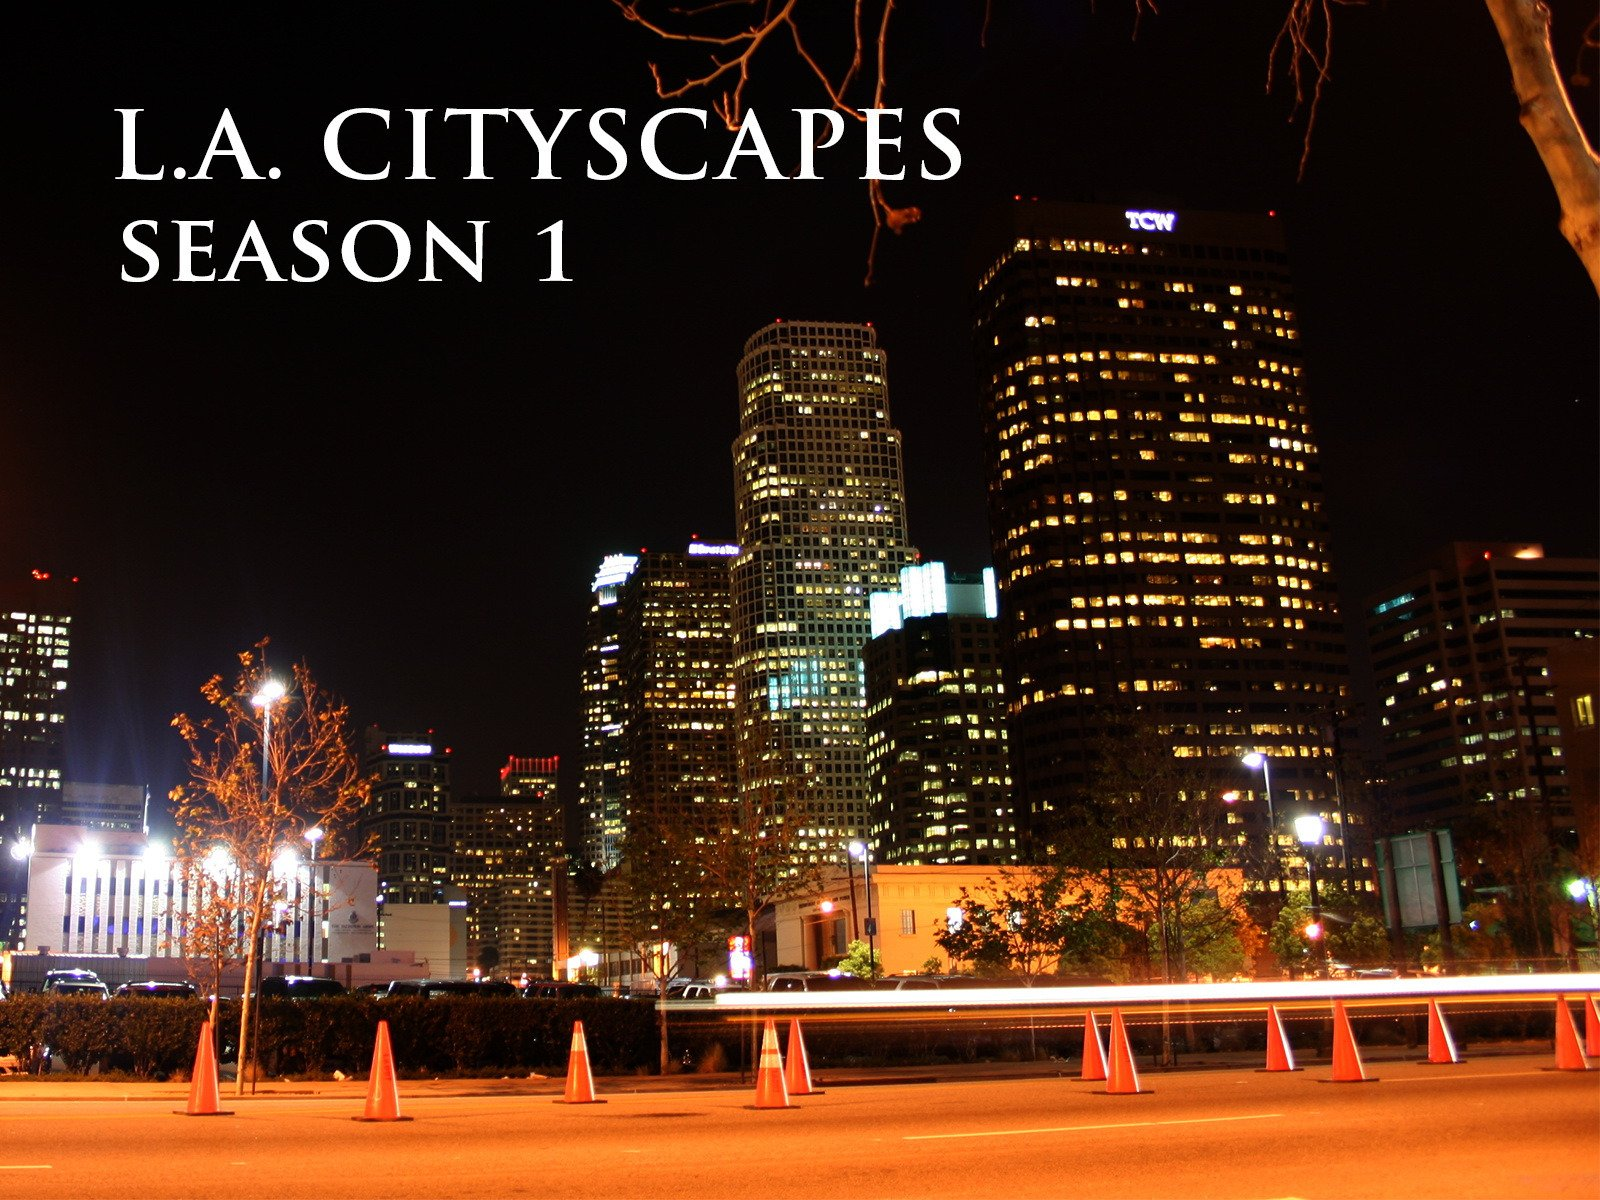 L.A. Cityscapes - Season 1